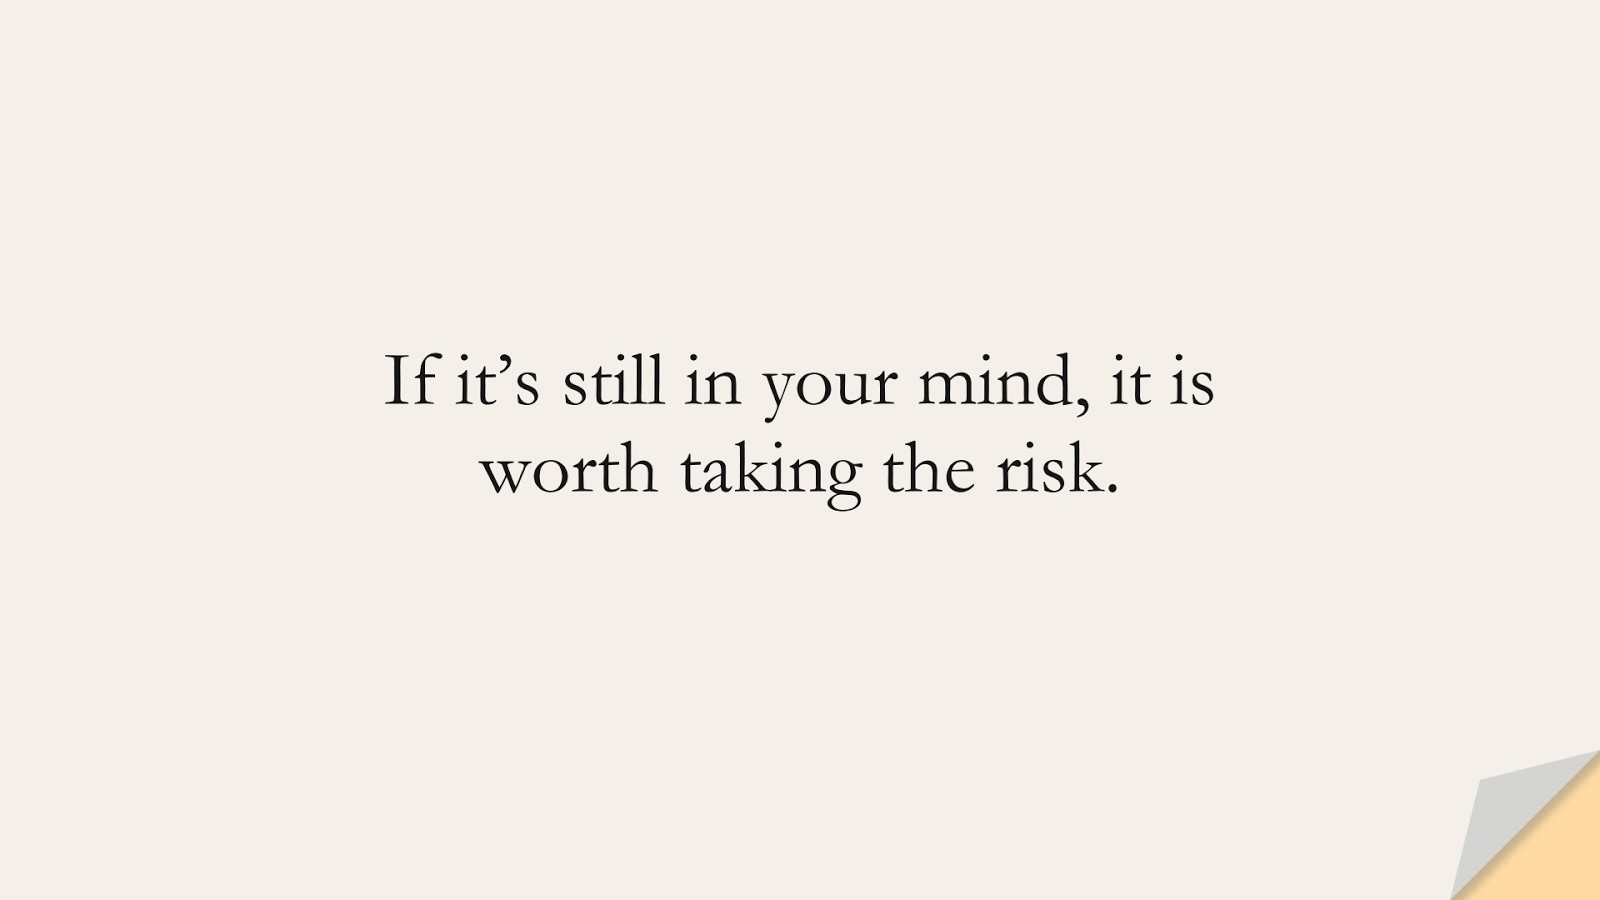 If it's still in your mind, it is worth taking the risk.FALSE